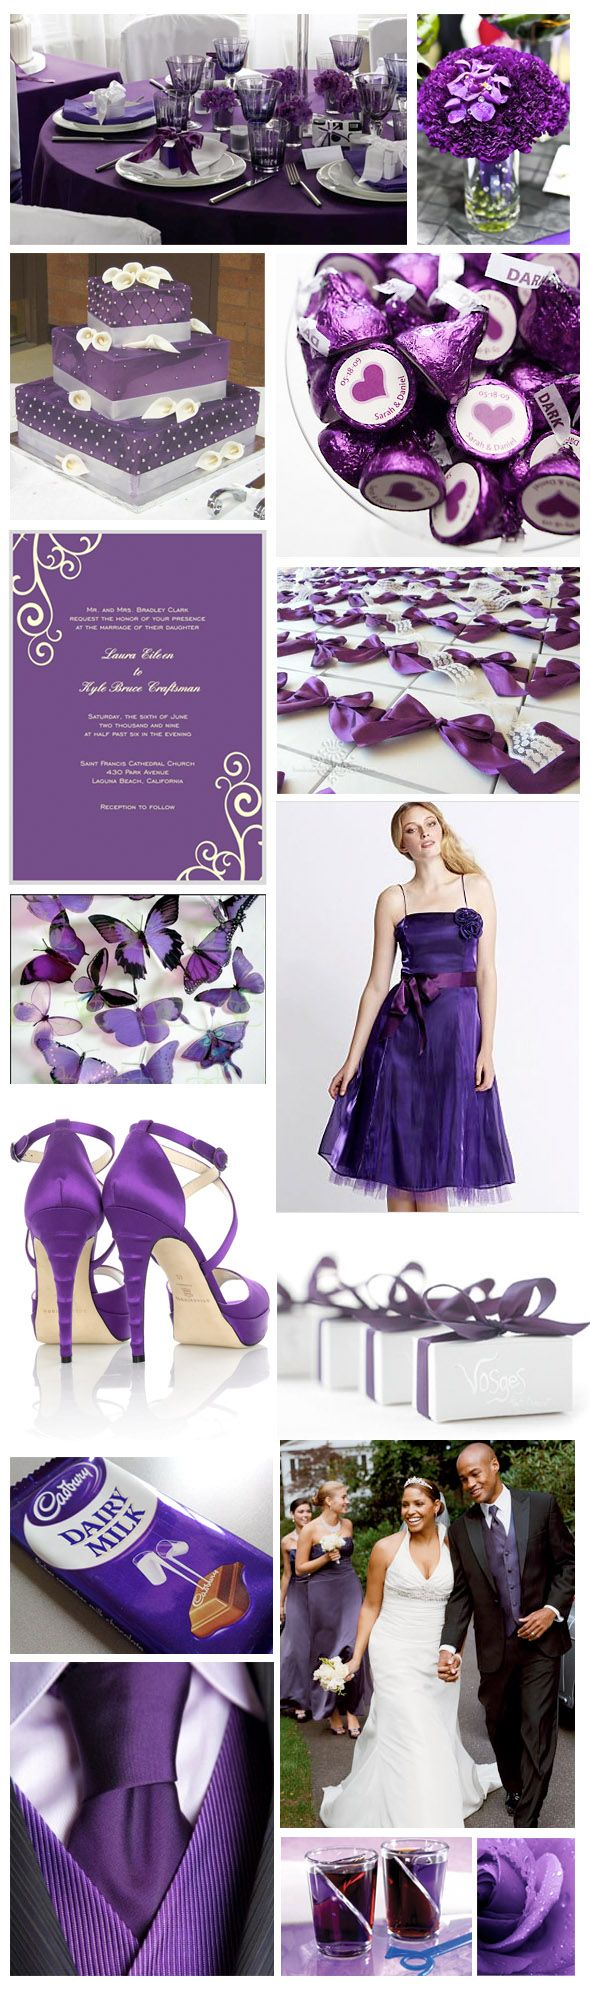 COLOURS; Cadburys purple wedding - DISGUSTING but probably the most requested colour I used to have - so much so Alfred Angelo (my bridesmaid designer) added the colour to their collection after so many requests...